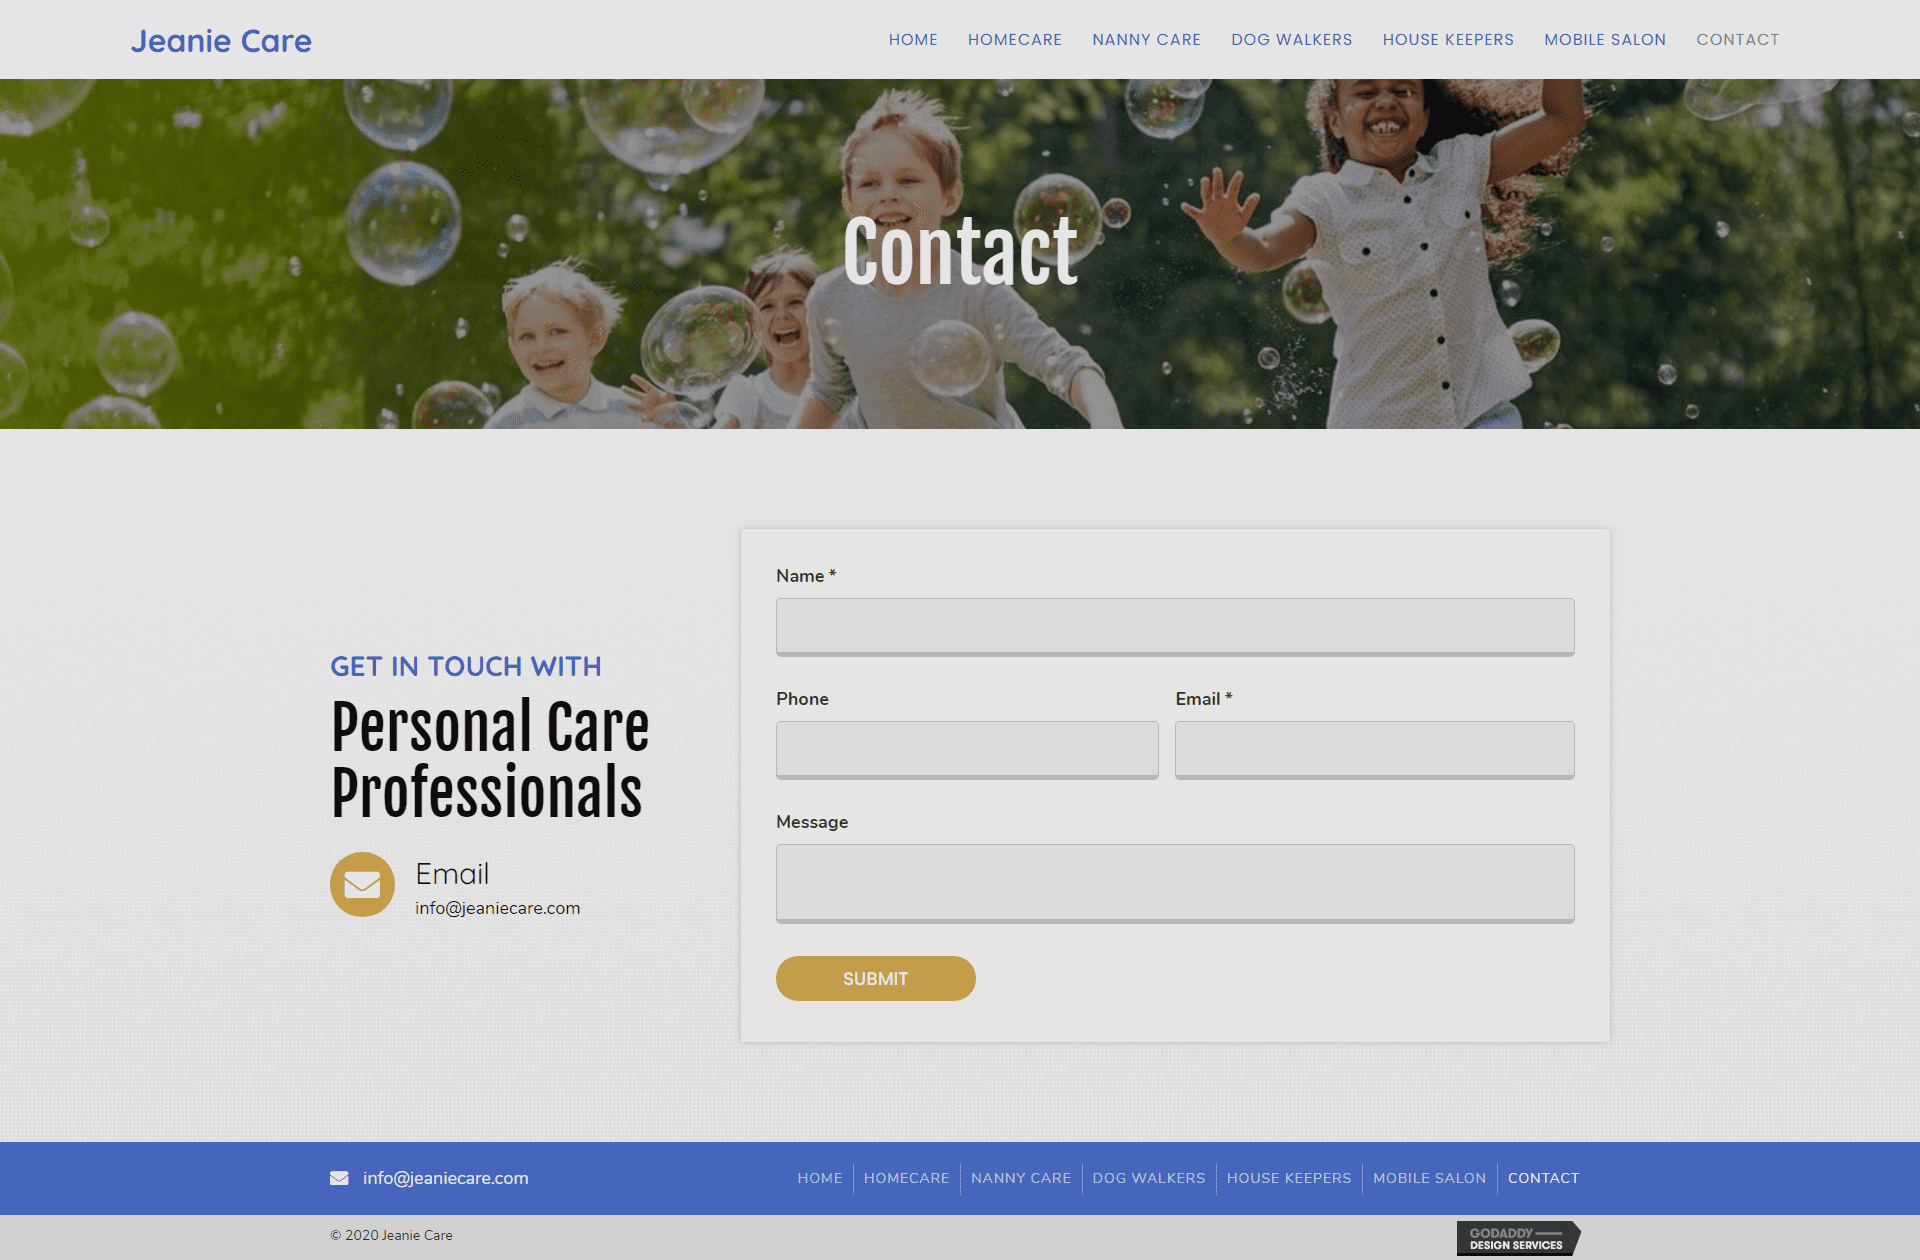 Jeanie Care Contact Page